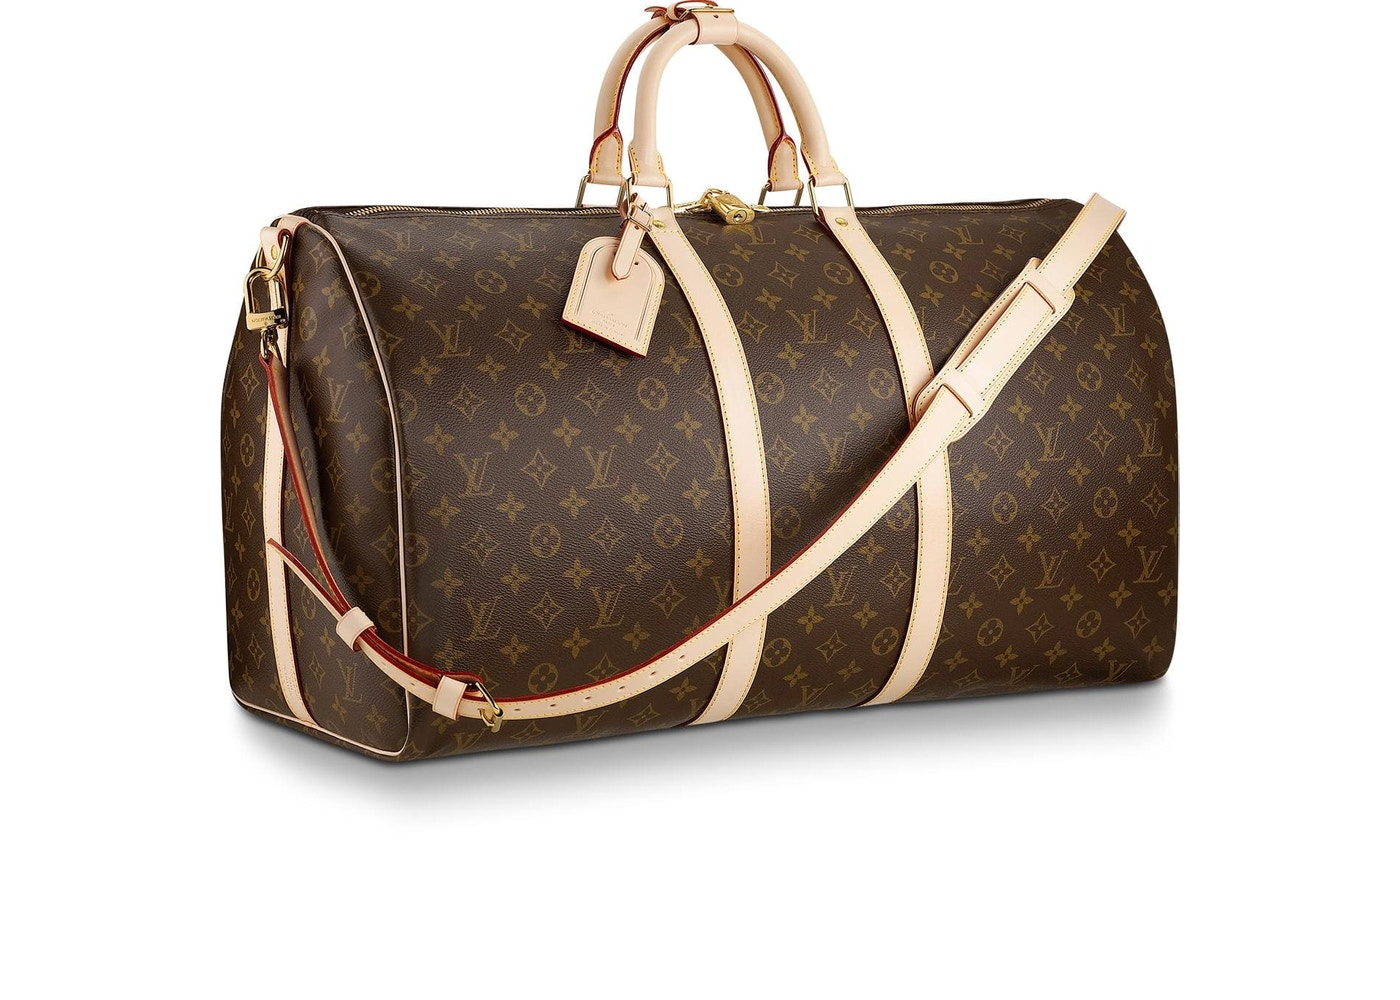 330785b74 Buy & Sell Louis Vuitton Keepall Handbags - Price Premium